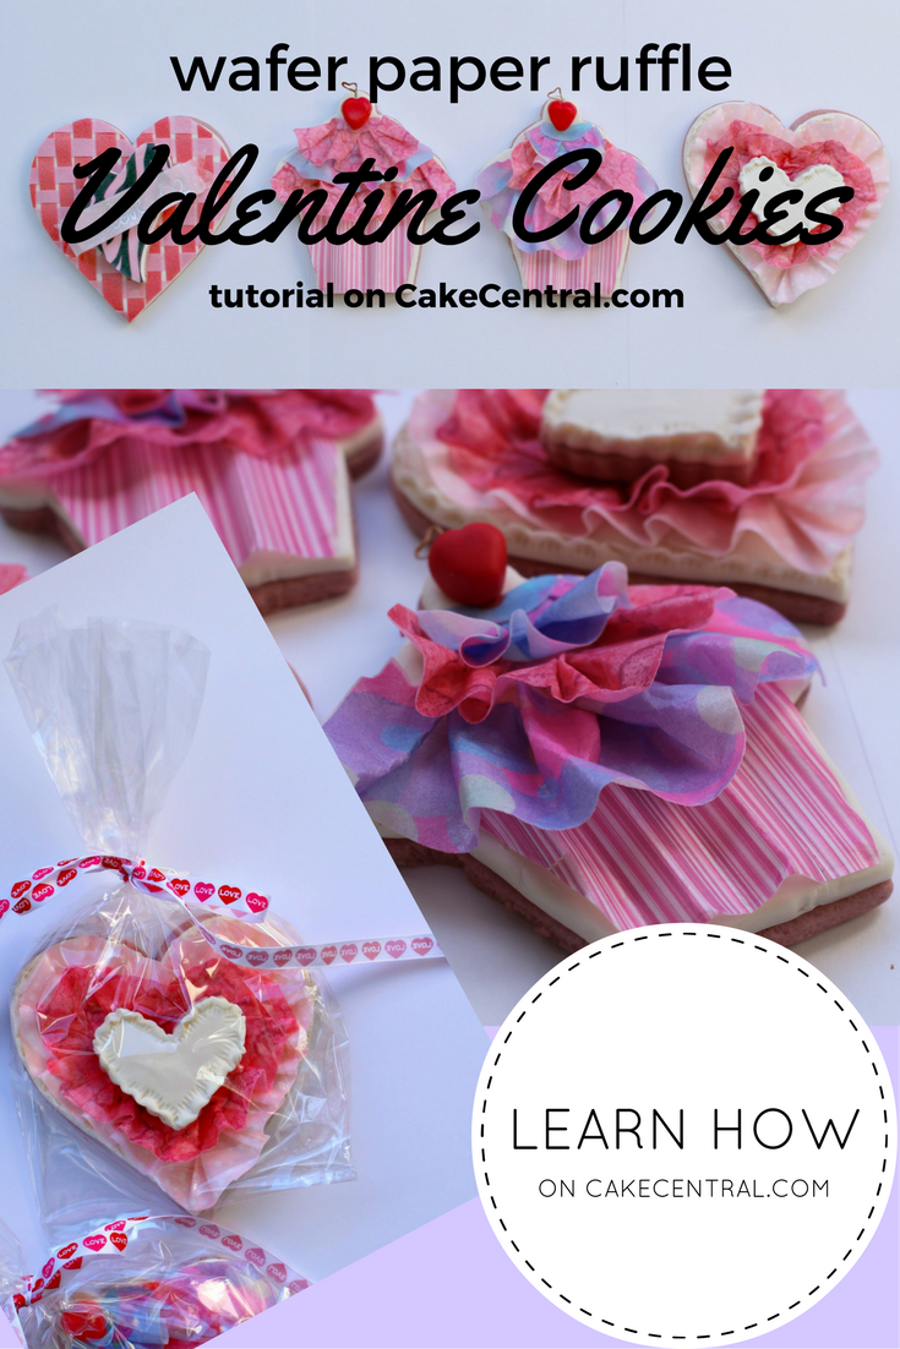 Wafer Paper Ruffle Valentine Cookie Tutorial Cakecentral Com